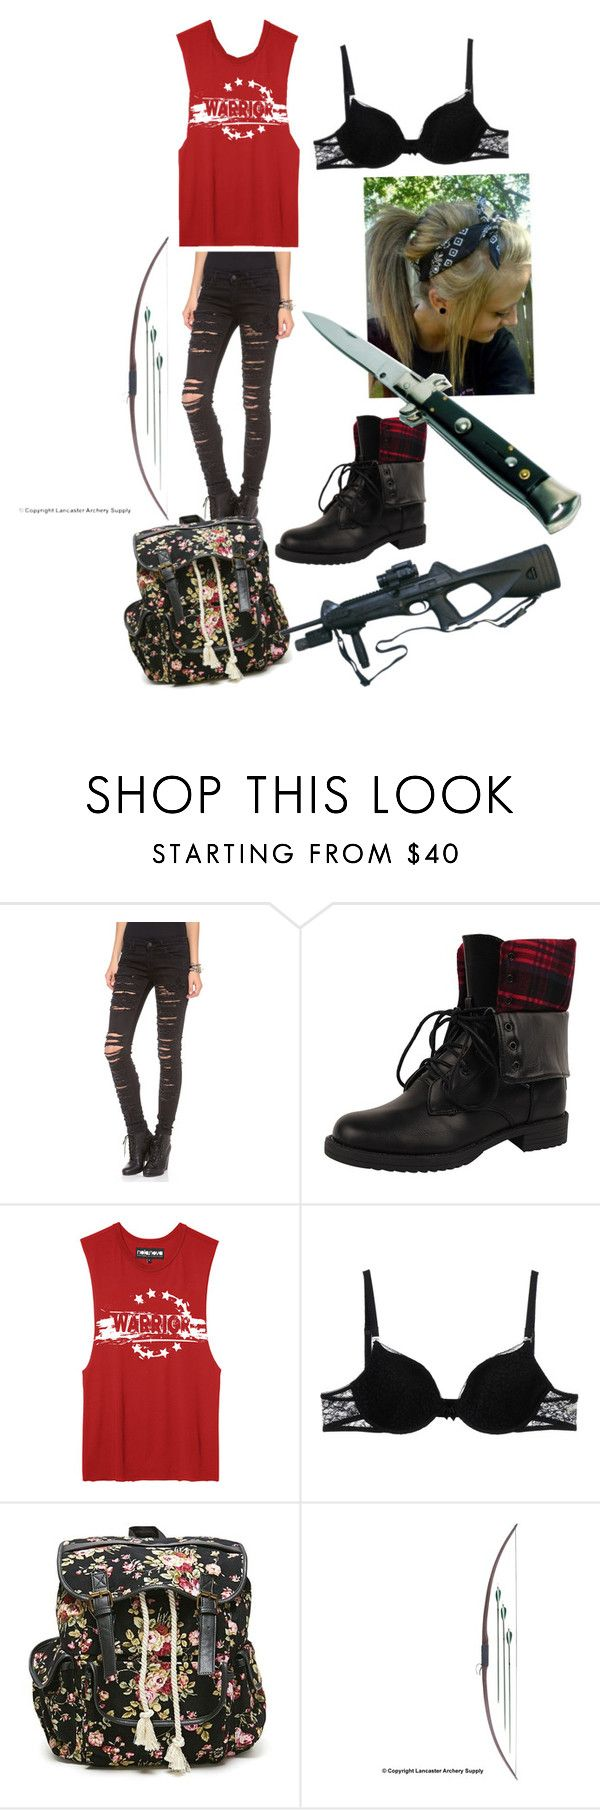 """""""Zombie apocalypse #1"""" by rachael-rose13 ❤ liked on Polyvore featuring Blank Denim, Dollhouse, Ermanno Scervino Lingerie and LA: Hearts"""